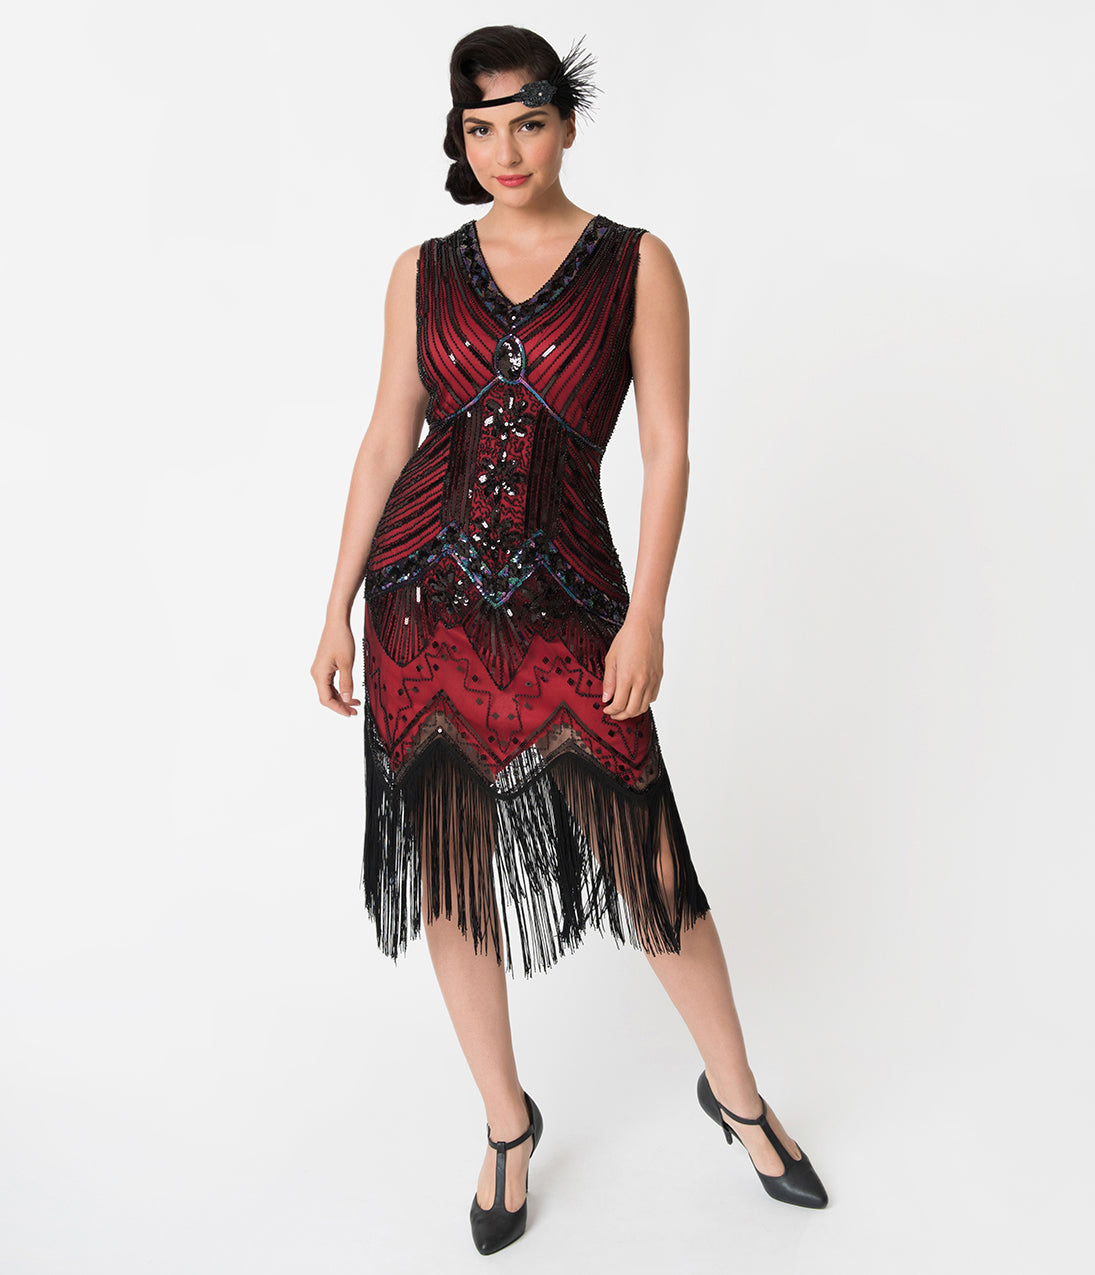 Vintage Christmas Gift Ideas for Women Unique Vintage 1920S Deco Red  Black Veronique Fringe Flapper Dress $98.00 AT vintagedancer.com